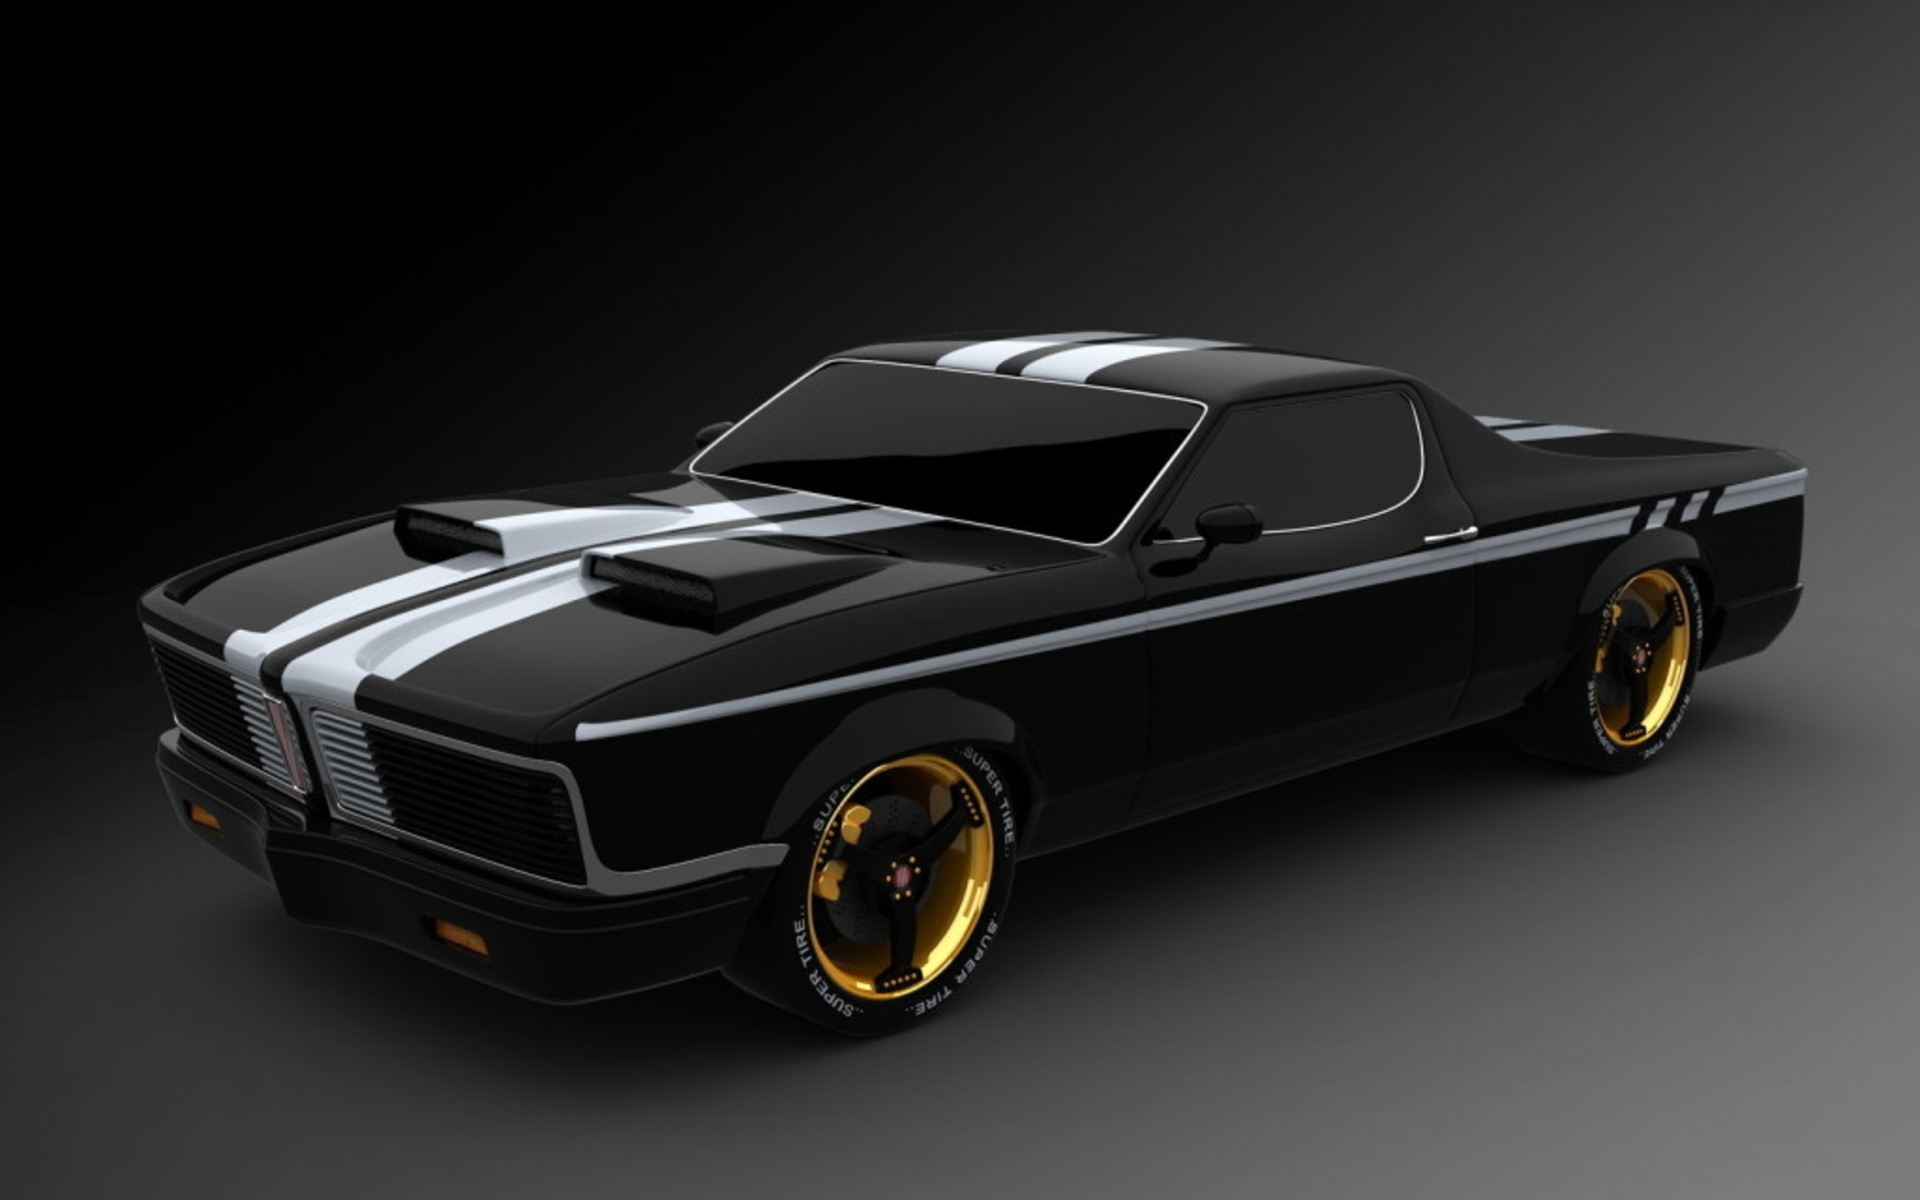 American Muscle Car Wallpaper 5673 Hd Wallpapers in Cars   Imagesci 1920x1200